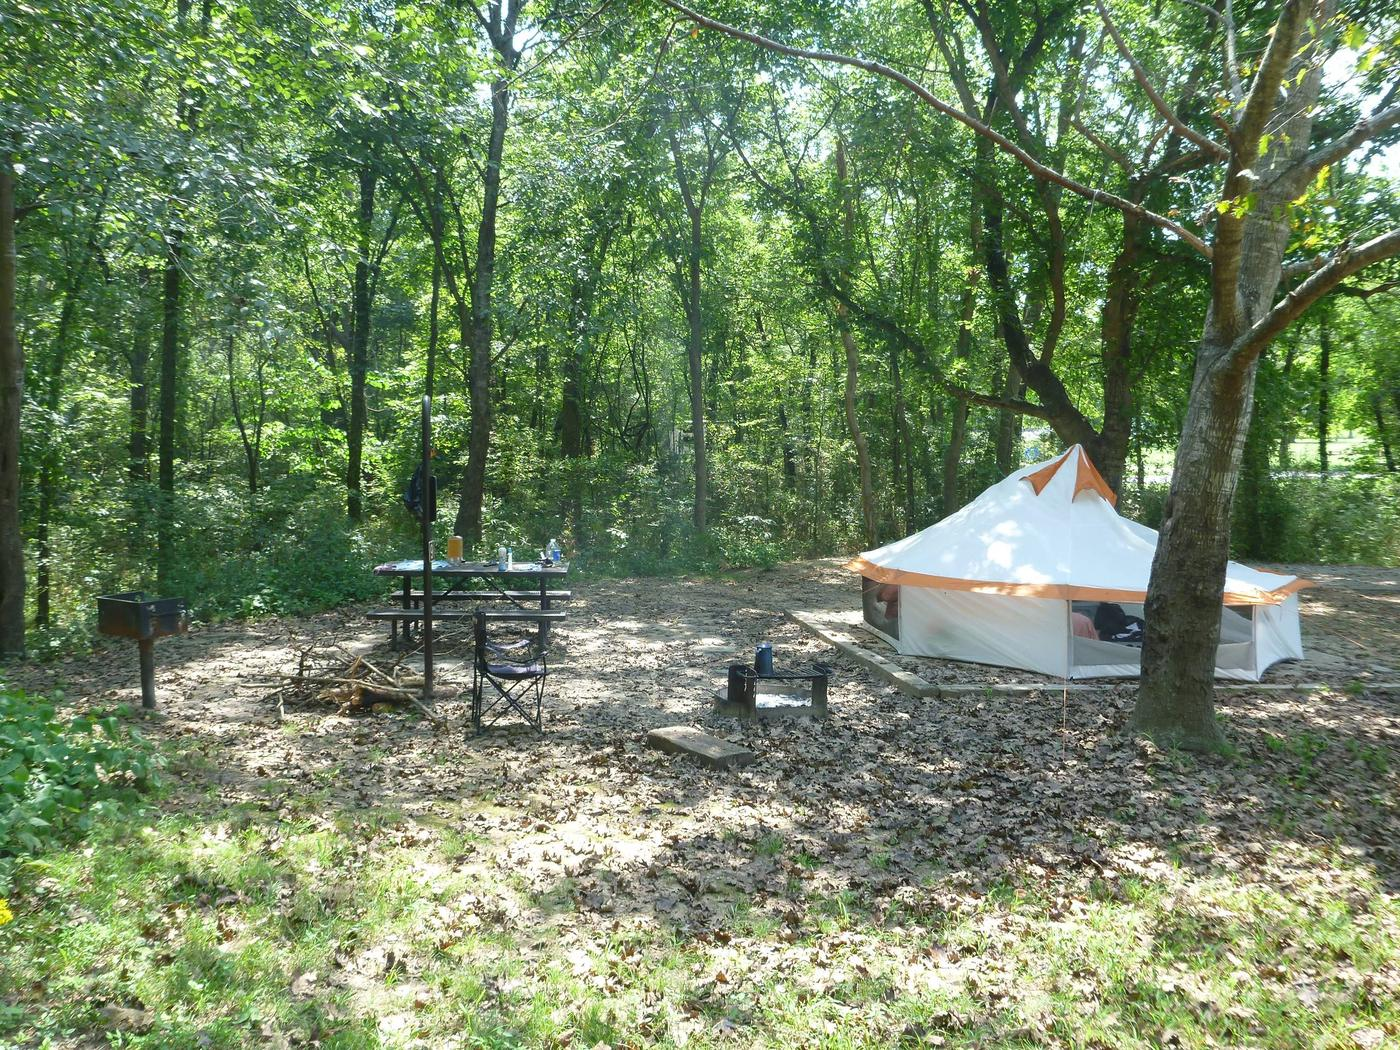 "Tyler Bend Main Loop Site#9-8 Site#9, 54' back-in, tent pad 15' x'15'.( on Right side of picture) Site #10, 43"" back-in, tent pad 15' x 15' (on left side of picture)"